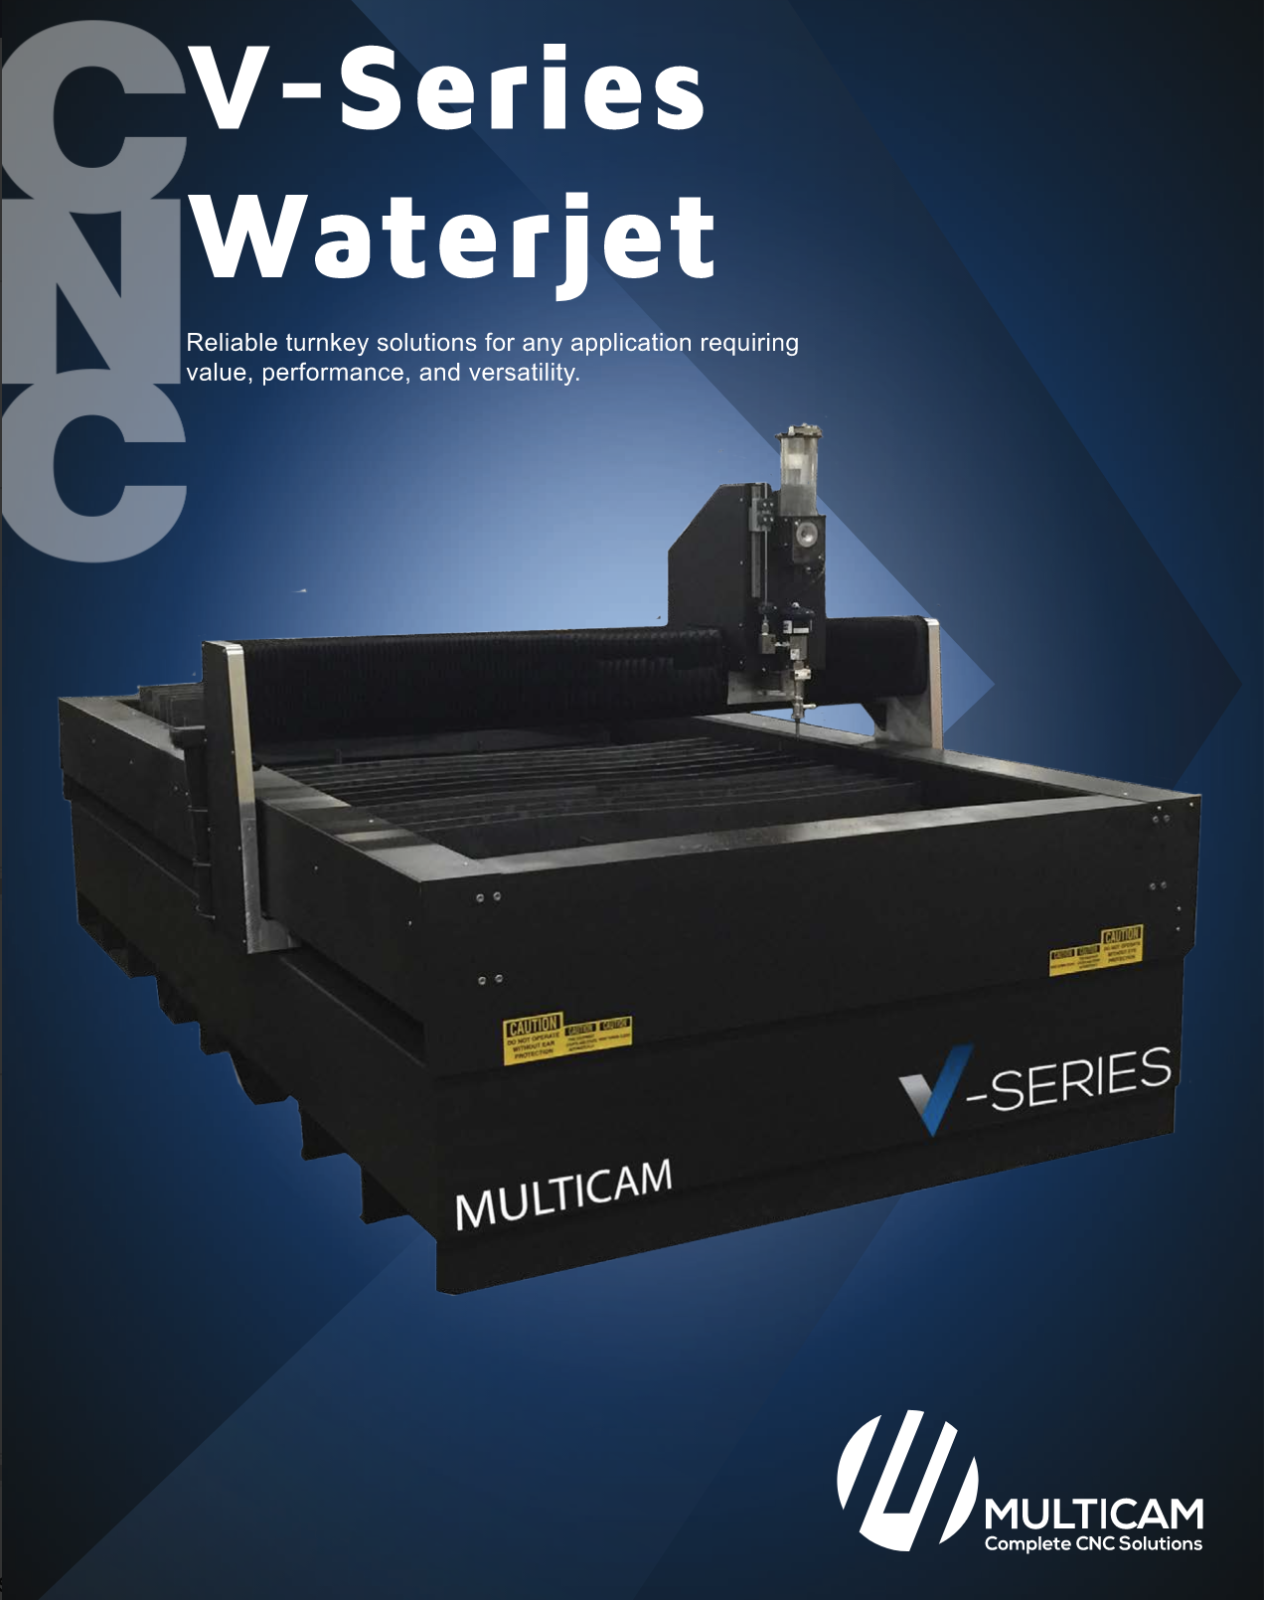 V-series CNC Waterjet